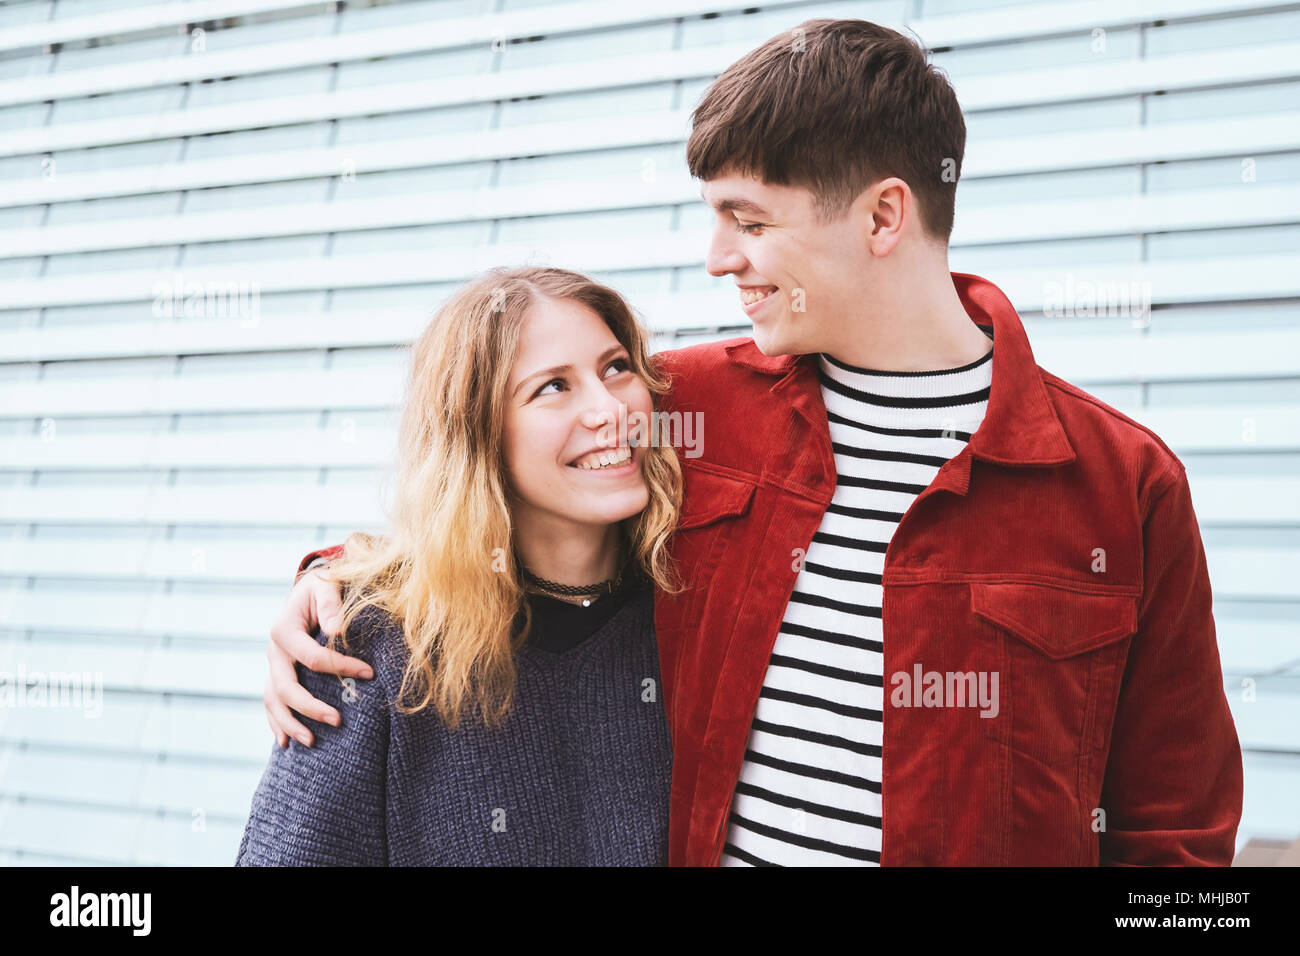 teenage couple in love looking into each others eyes, urban setting with copy space - Stock Image